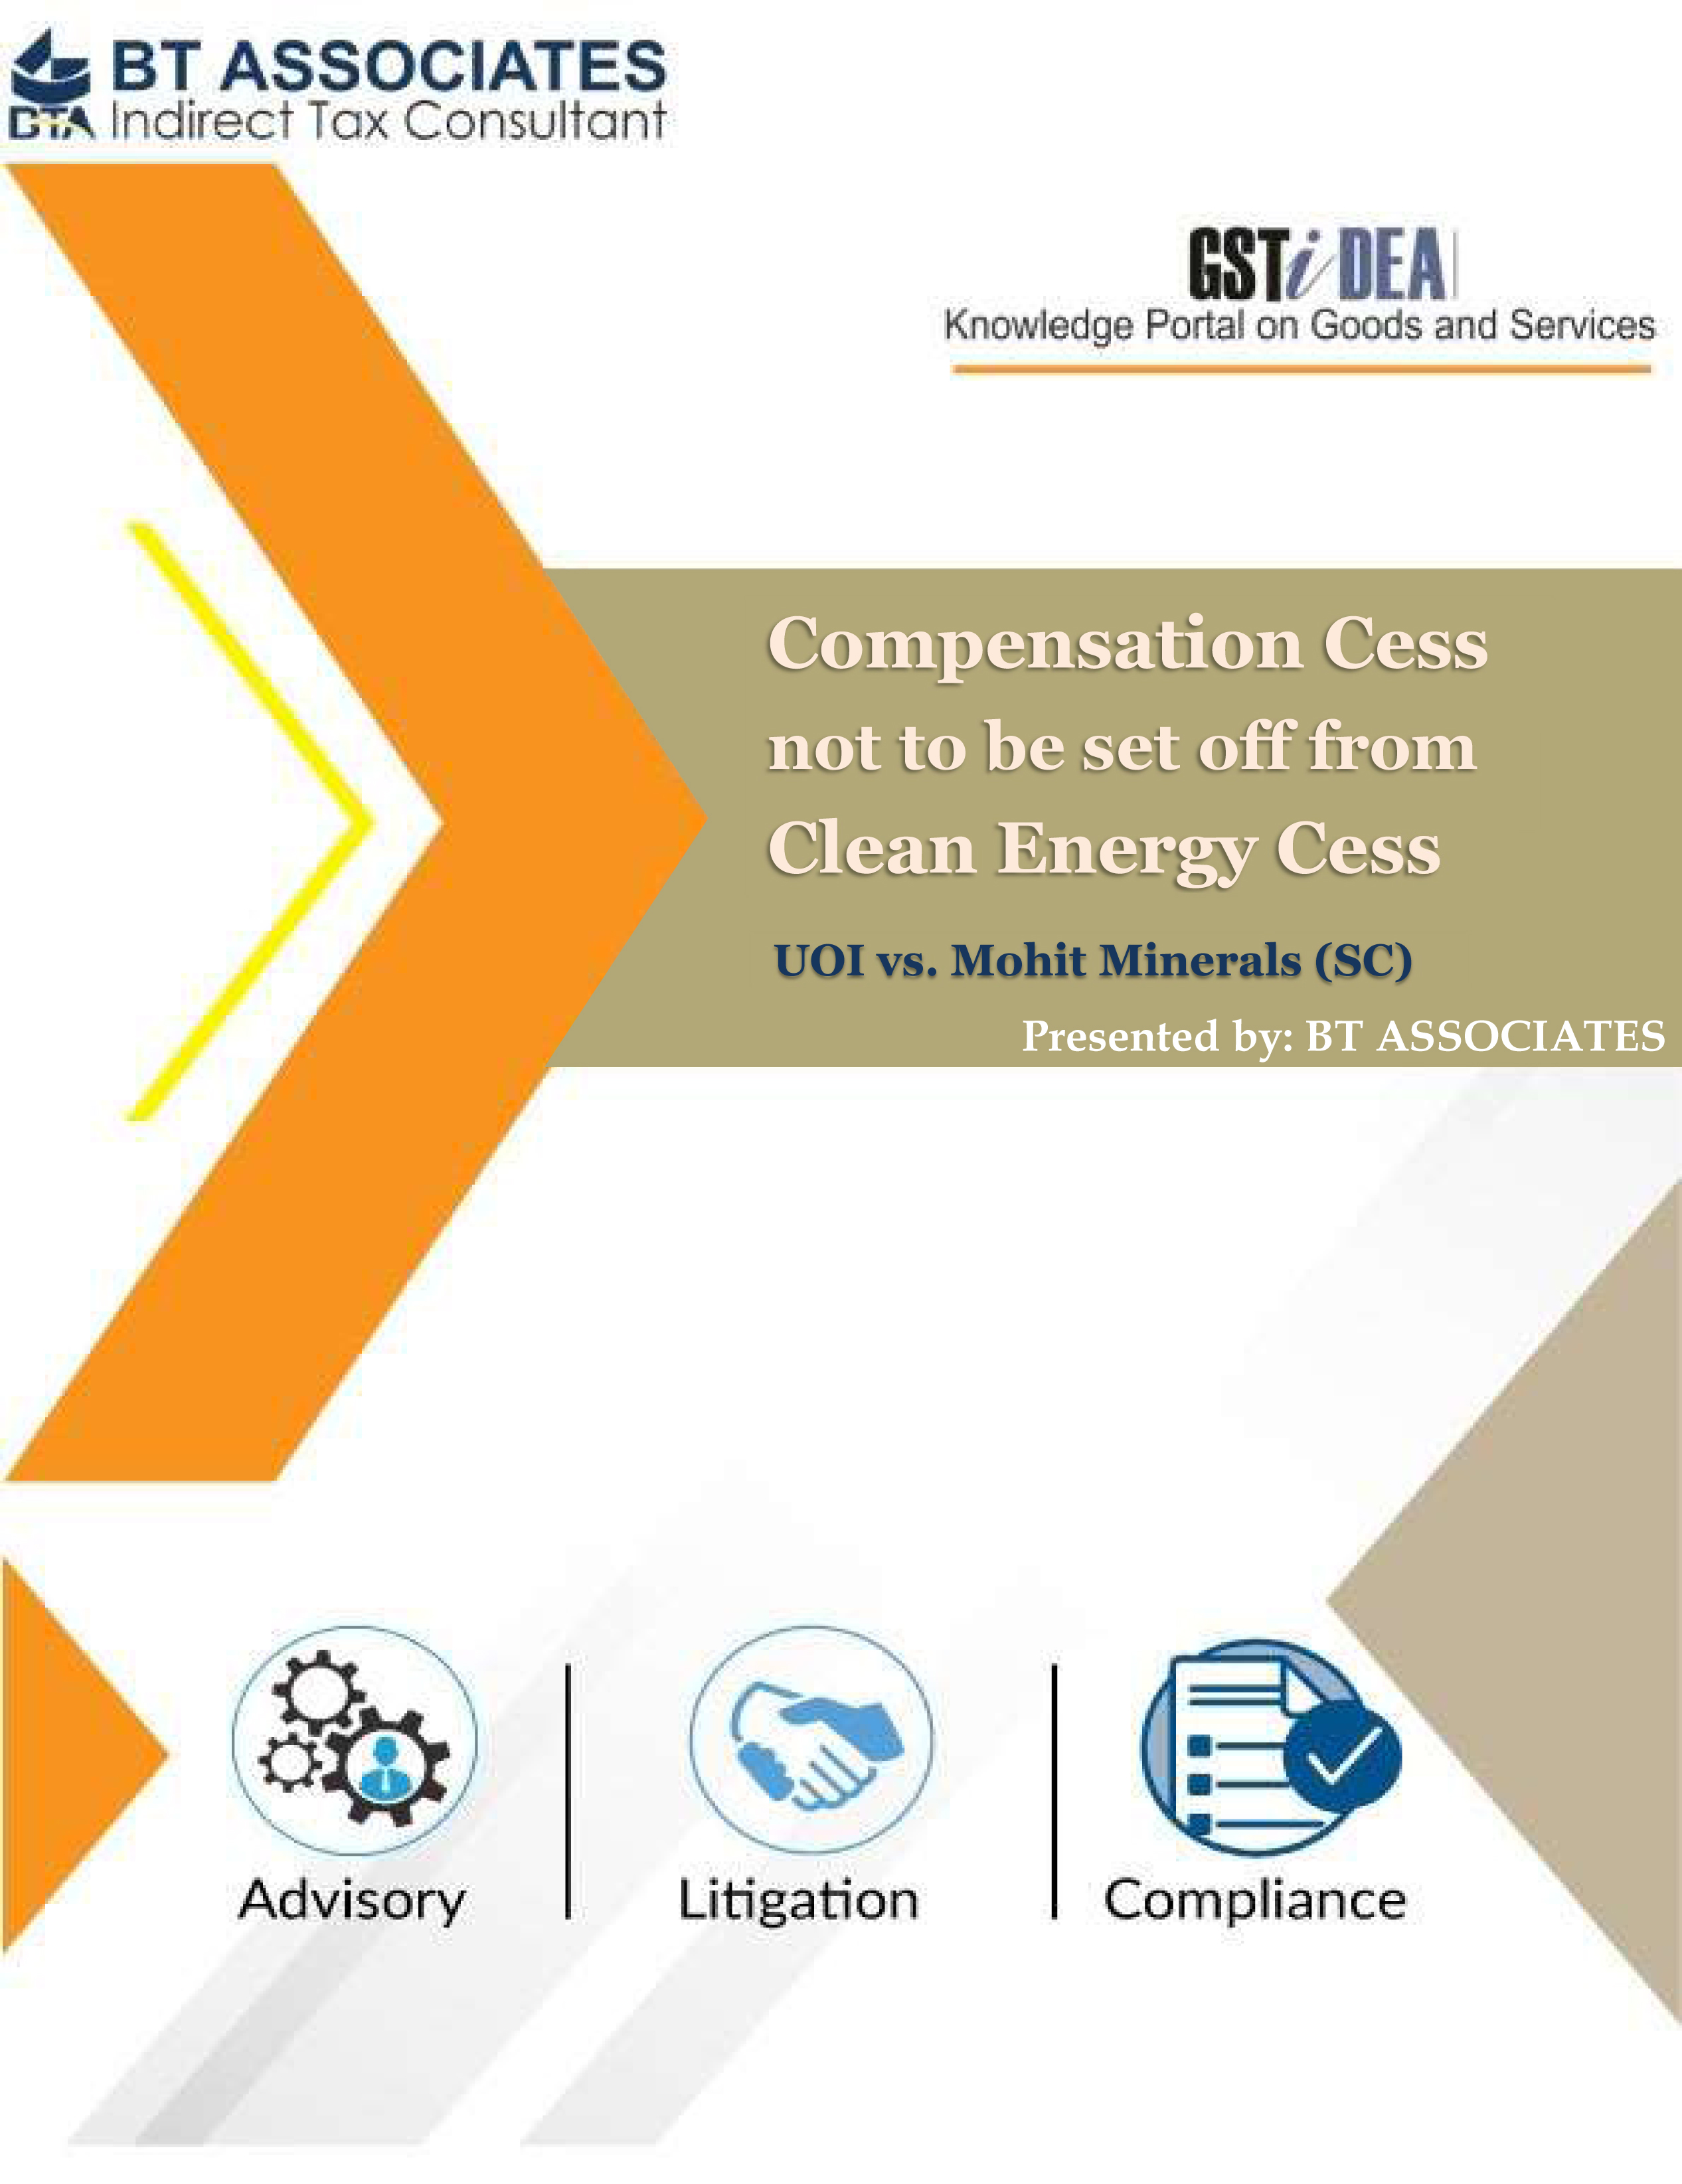 Compensation Cess not to be set off from Clean Energy Cess